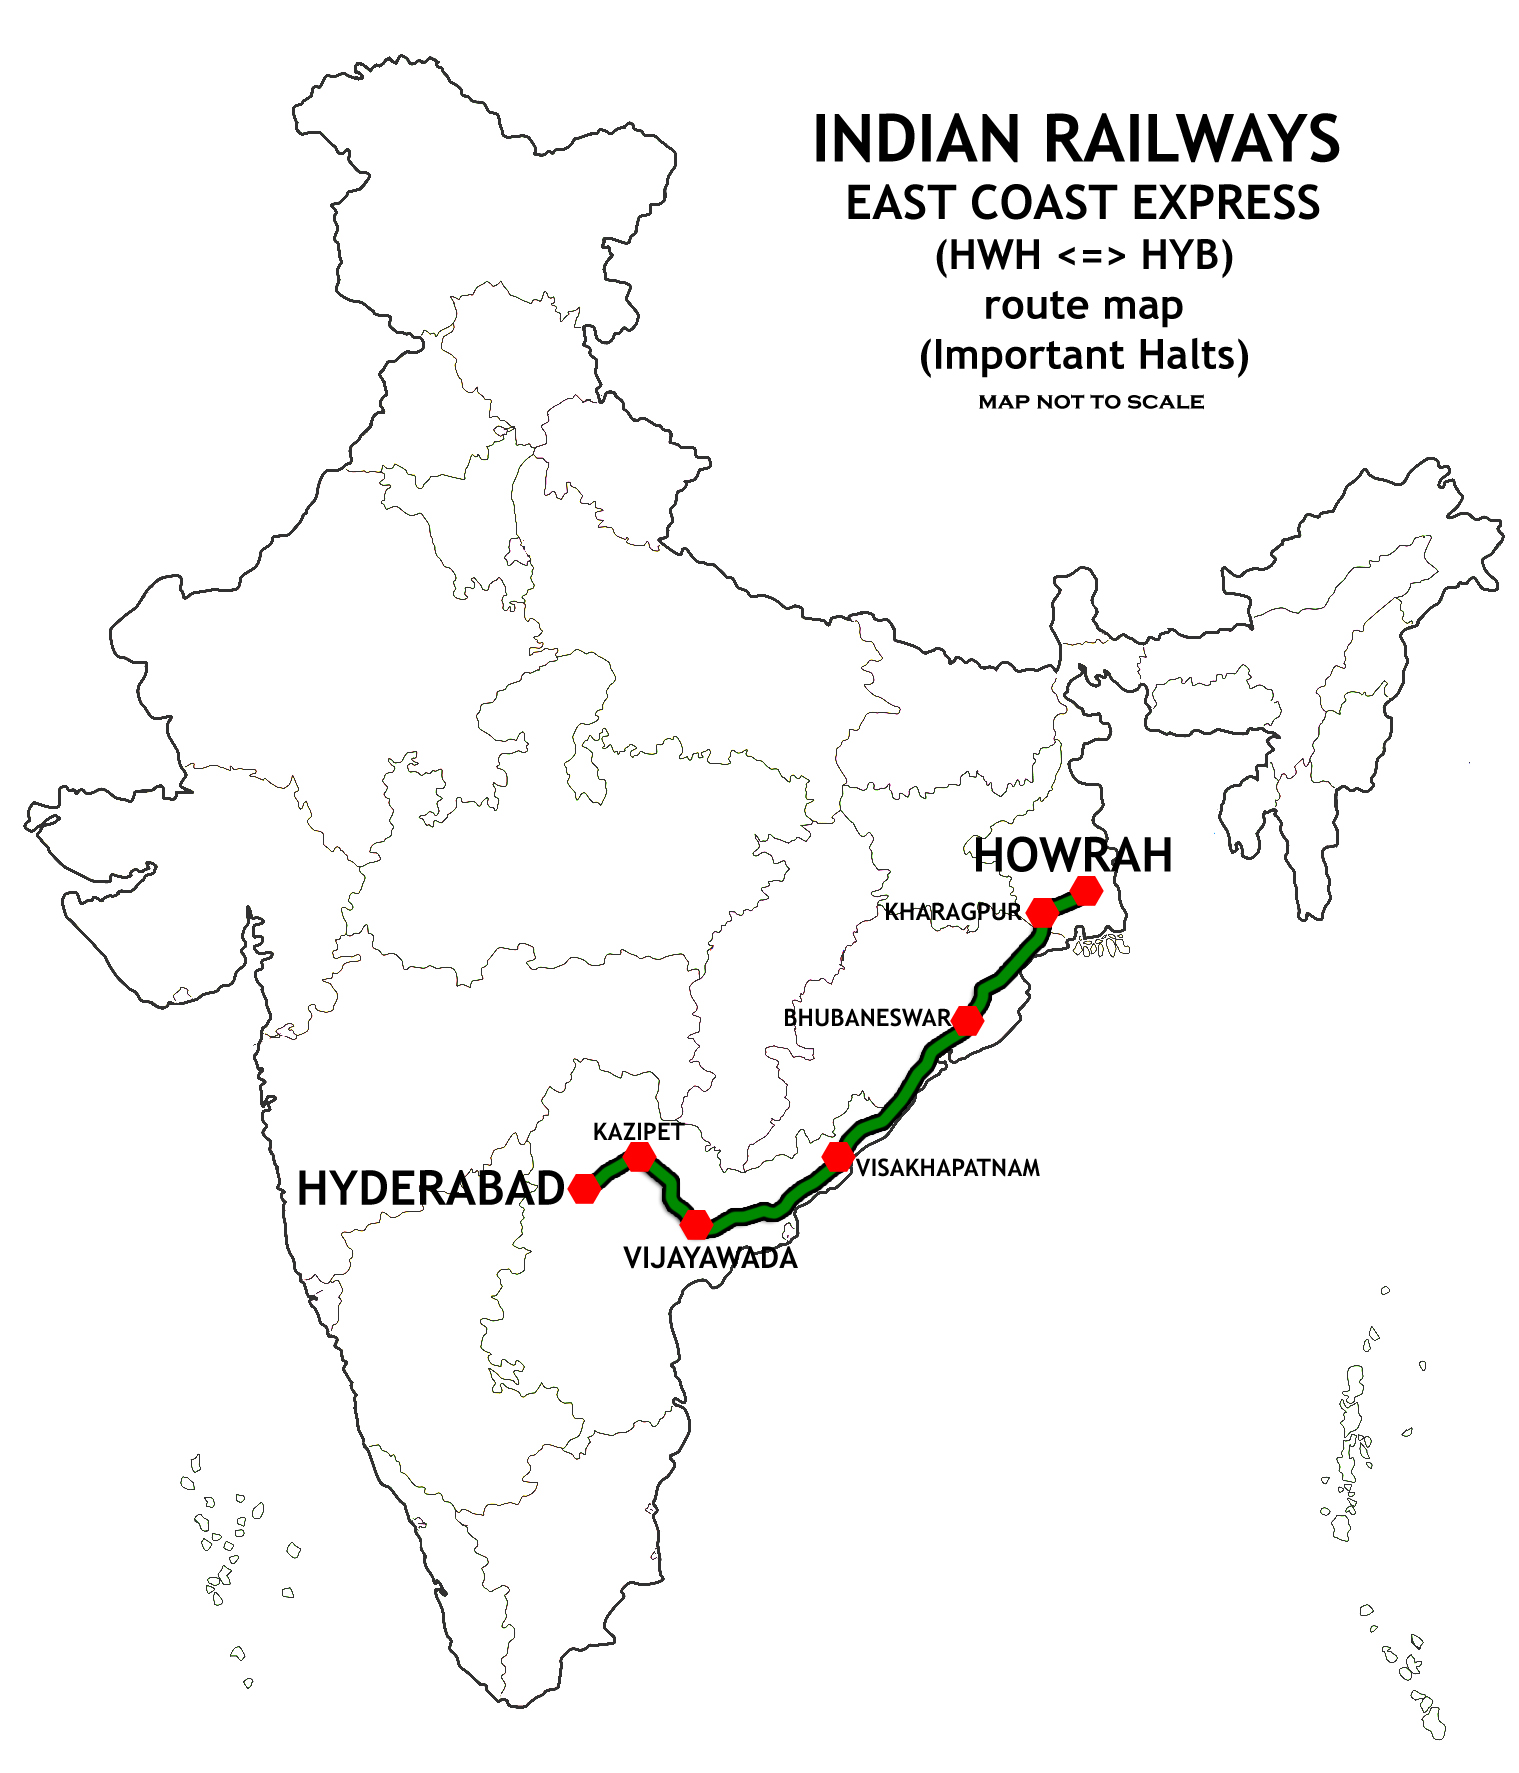 File:East Coast Express (India) Route map.jpg - Wikimedia Commons